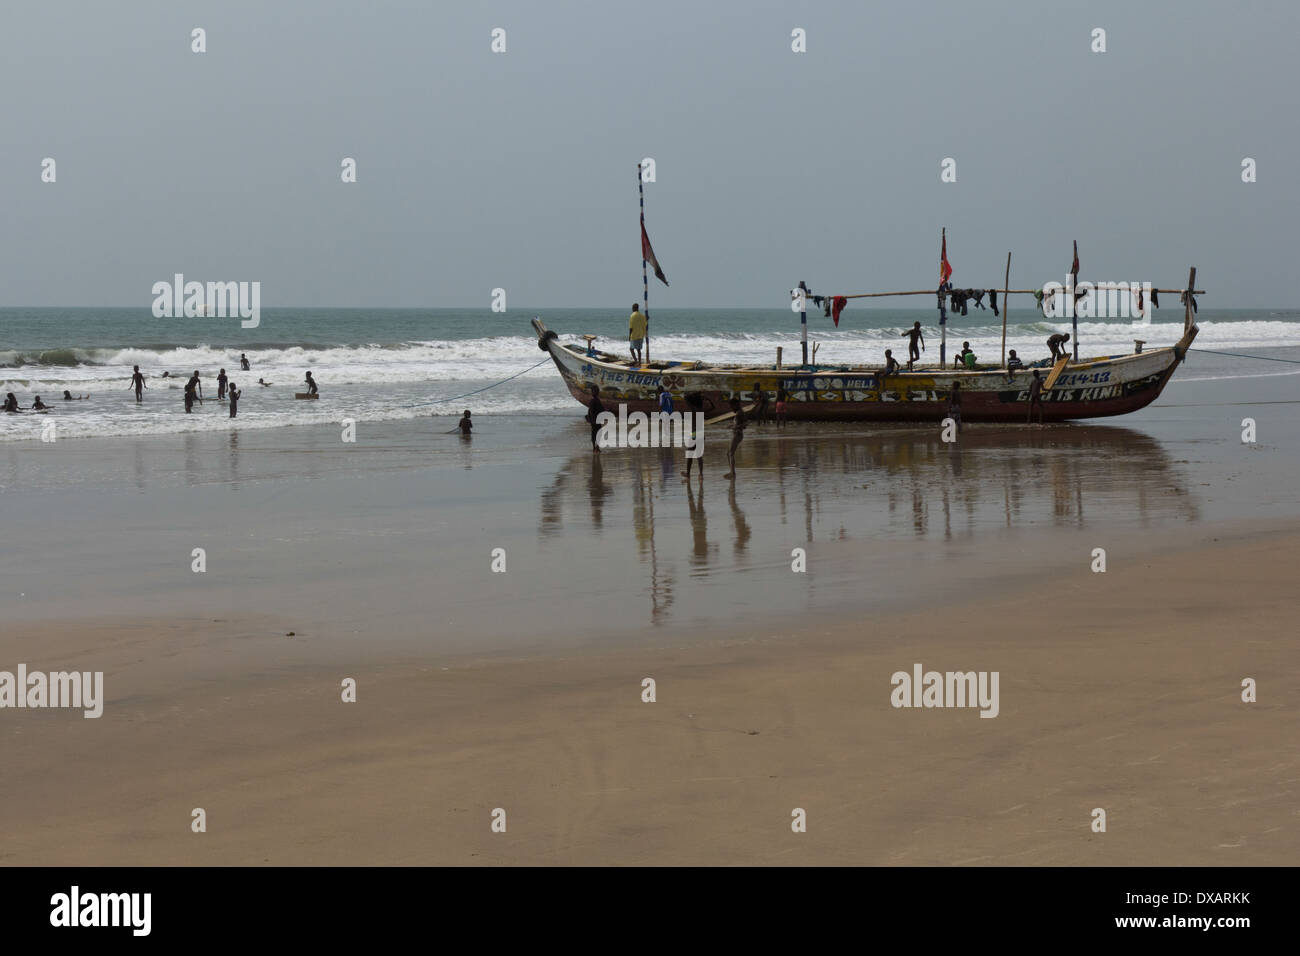 Children playing in fishing boat and in the sea at Kokrobite Beach, Ghana Stock Photo